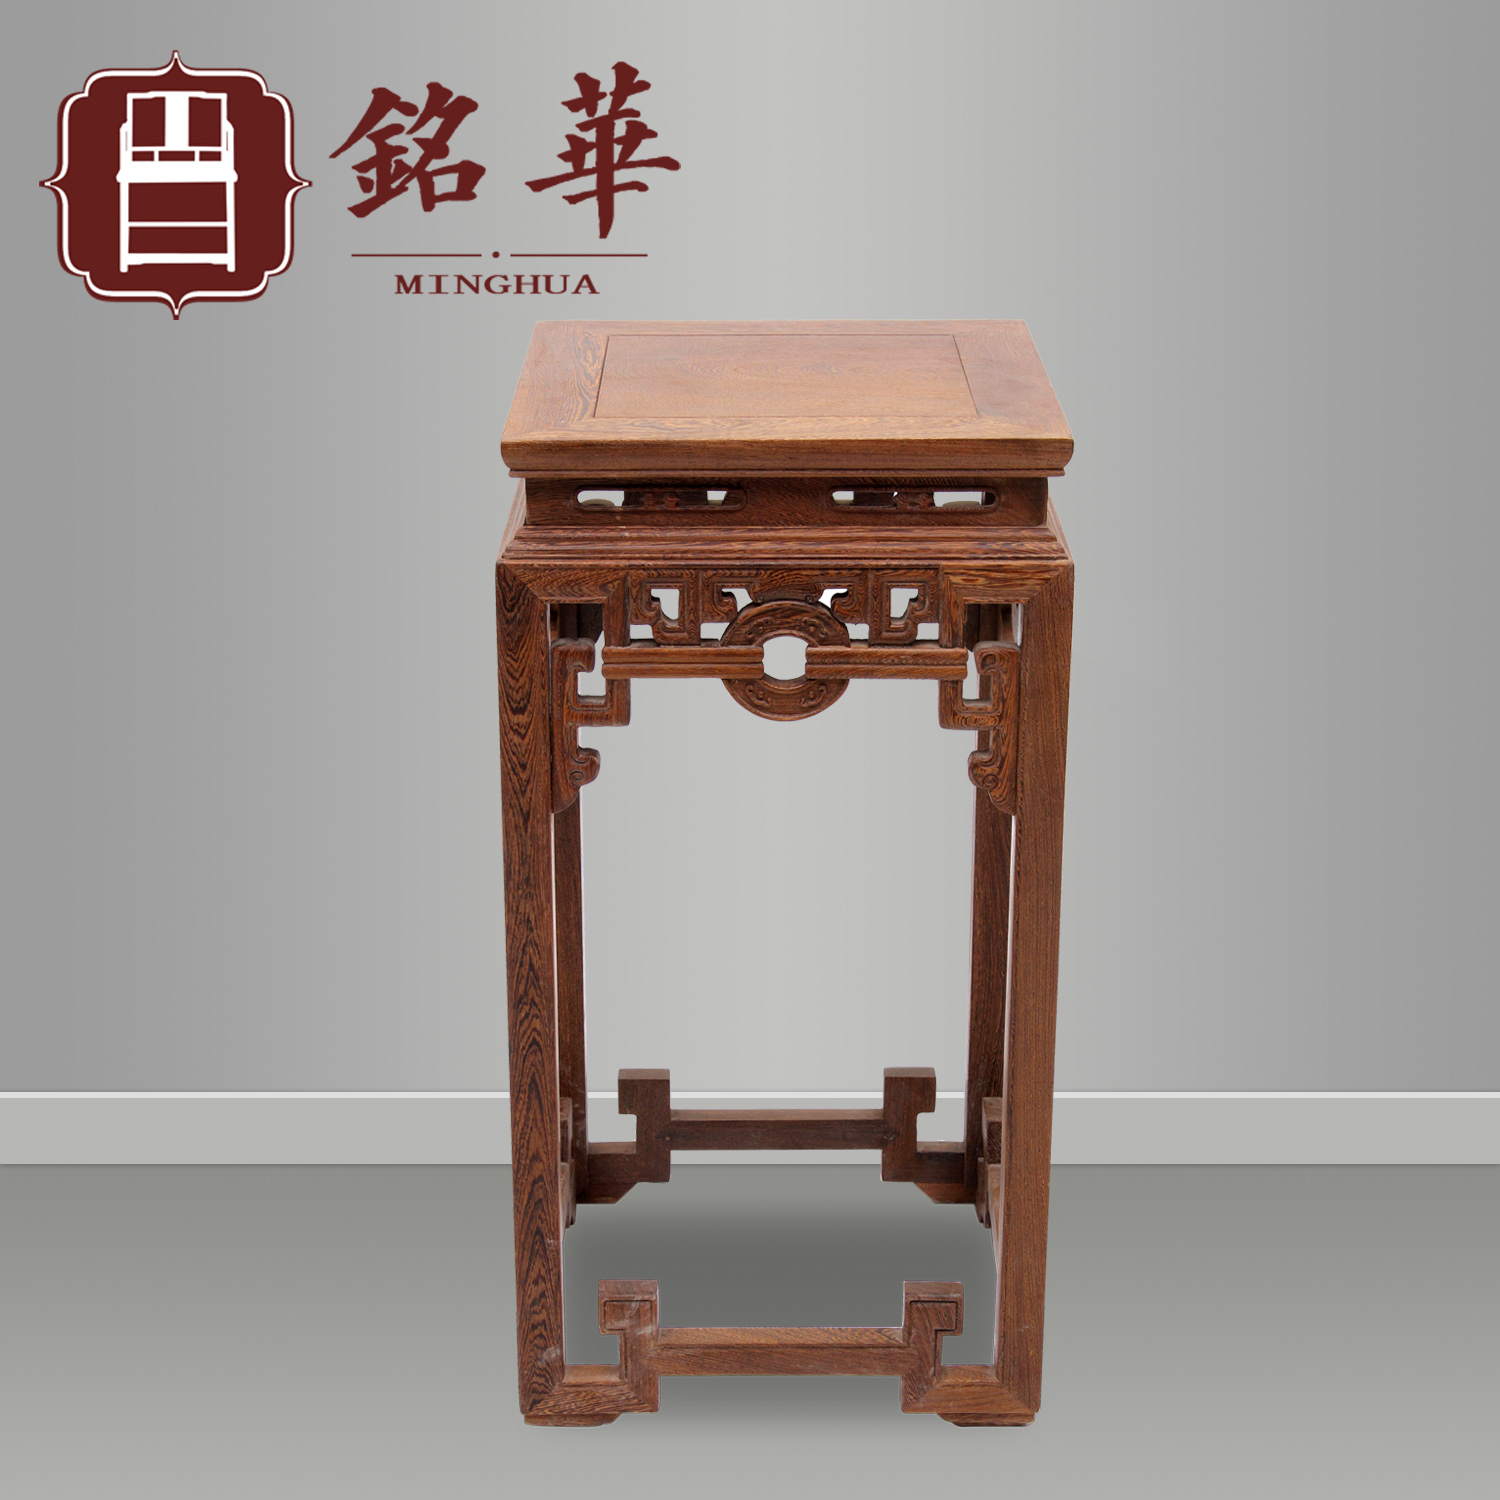 Ming and qing mahogany furniture wenge wood living room potted myanmar pear flower chinese wood to spend a few bonsai frame